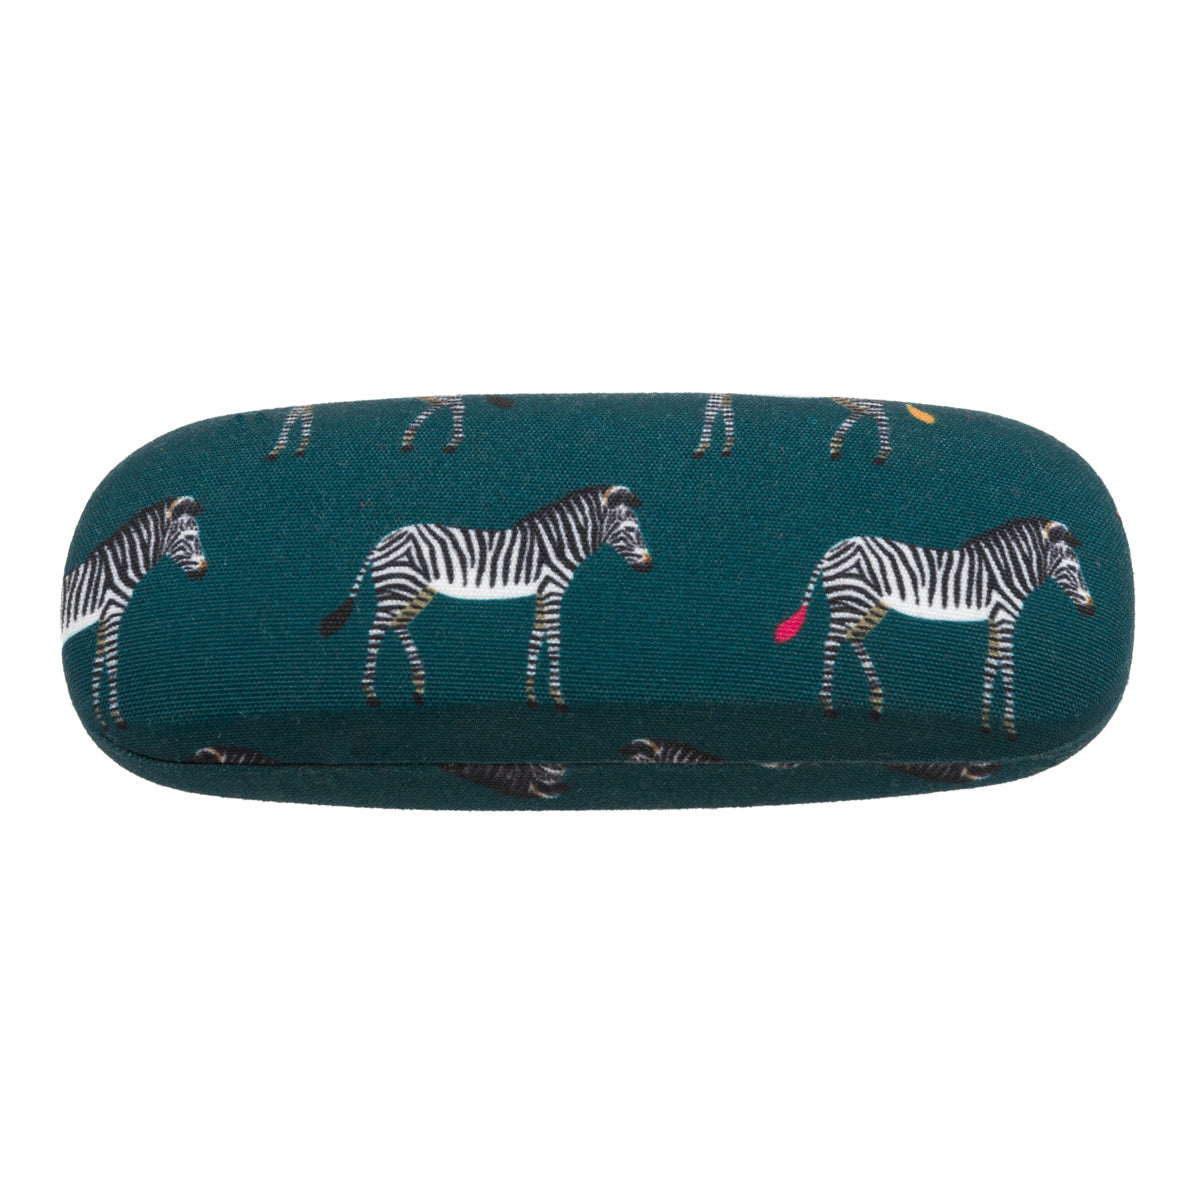 Zebra Glasses Hard Case